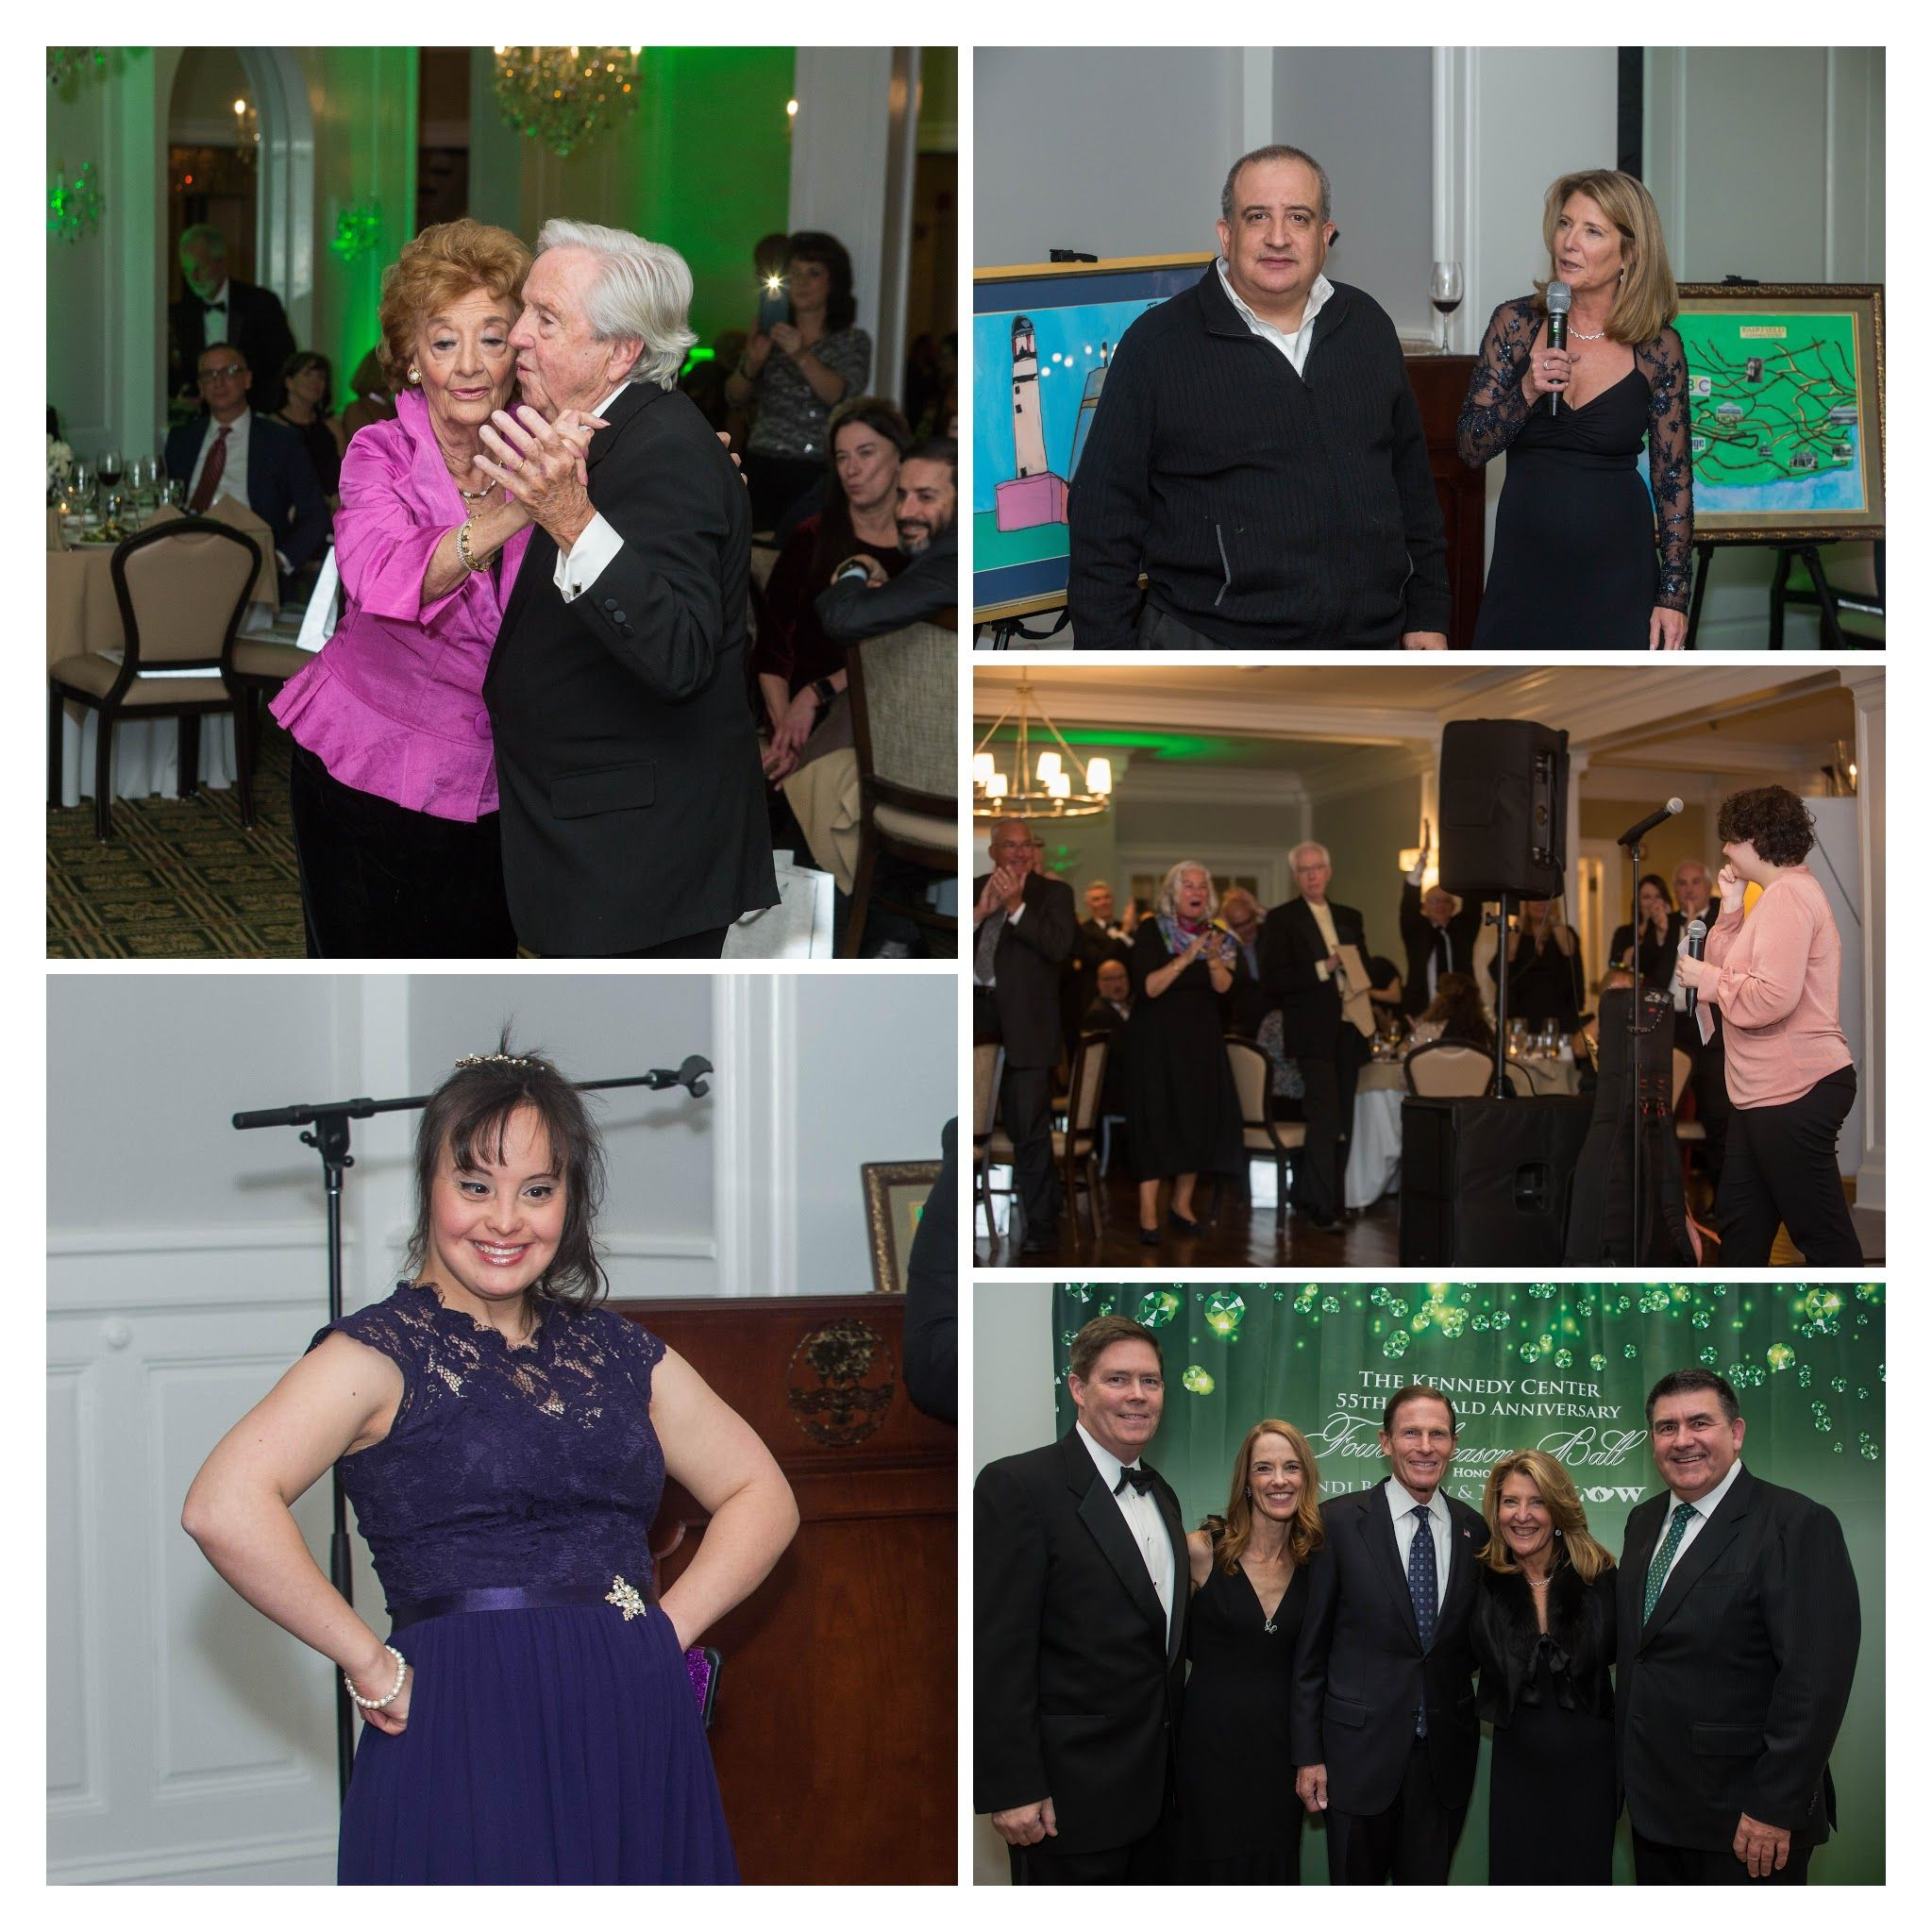 Emerald Anniversary raises over $150k for Kennedy Center programs, businesses